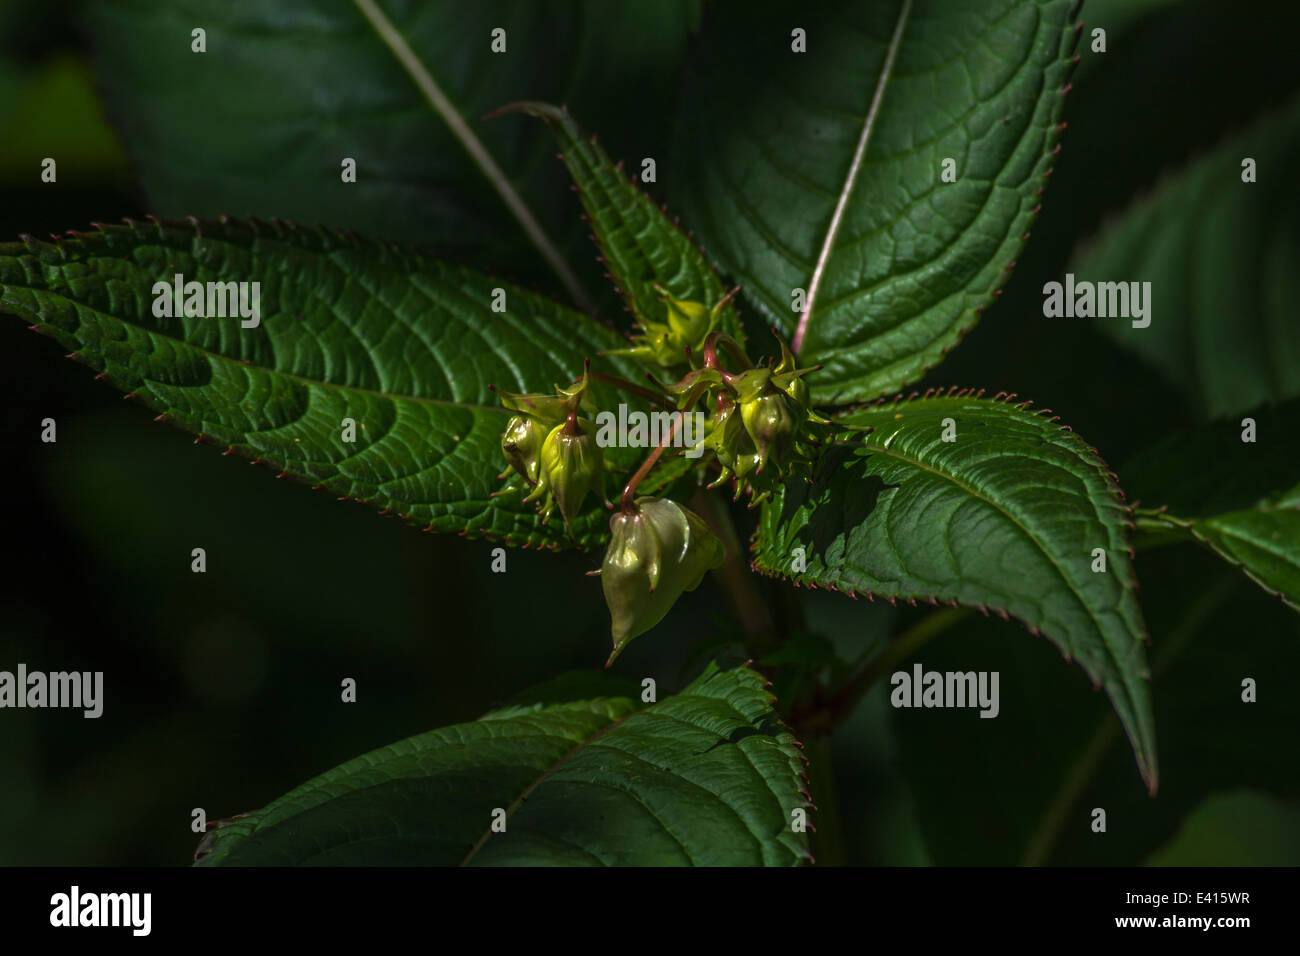 Flower buds and upper leaves of the troublesome Himalyan Balsam / Impatiens glandulifera - which likes damp soils Stock Photo